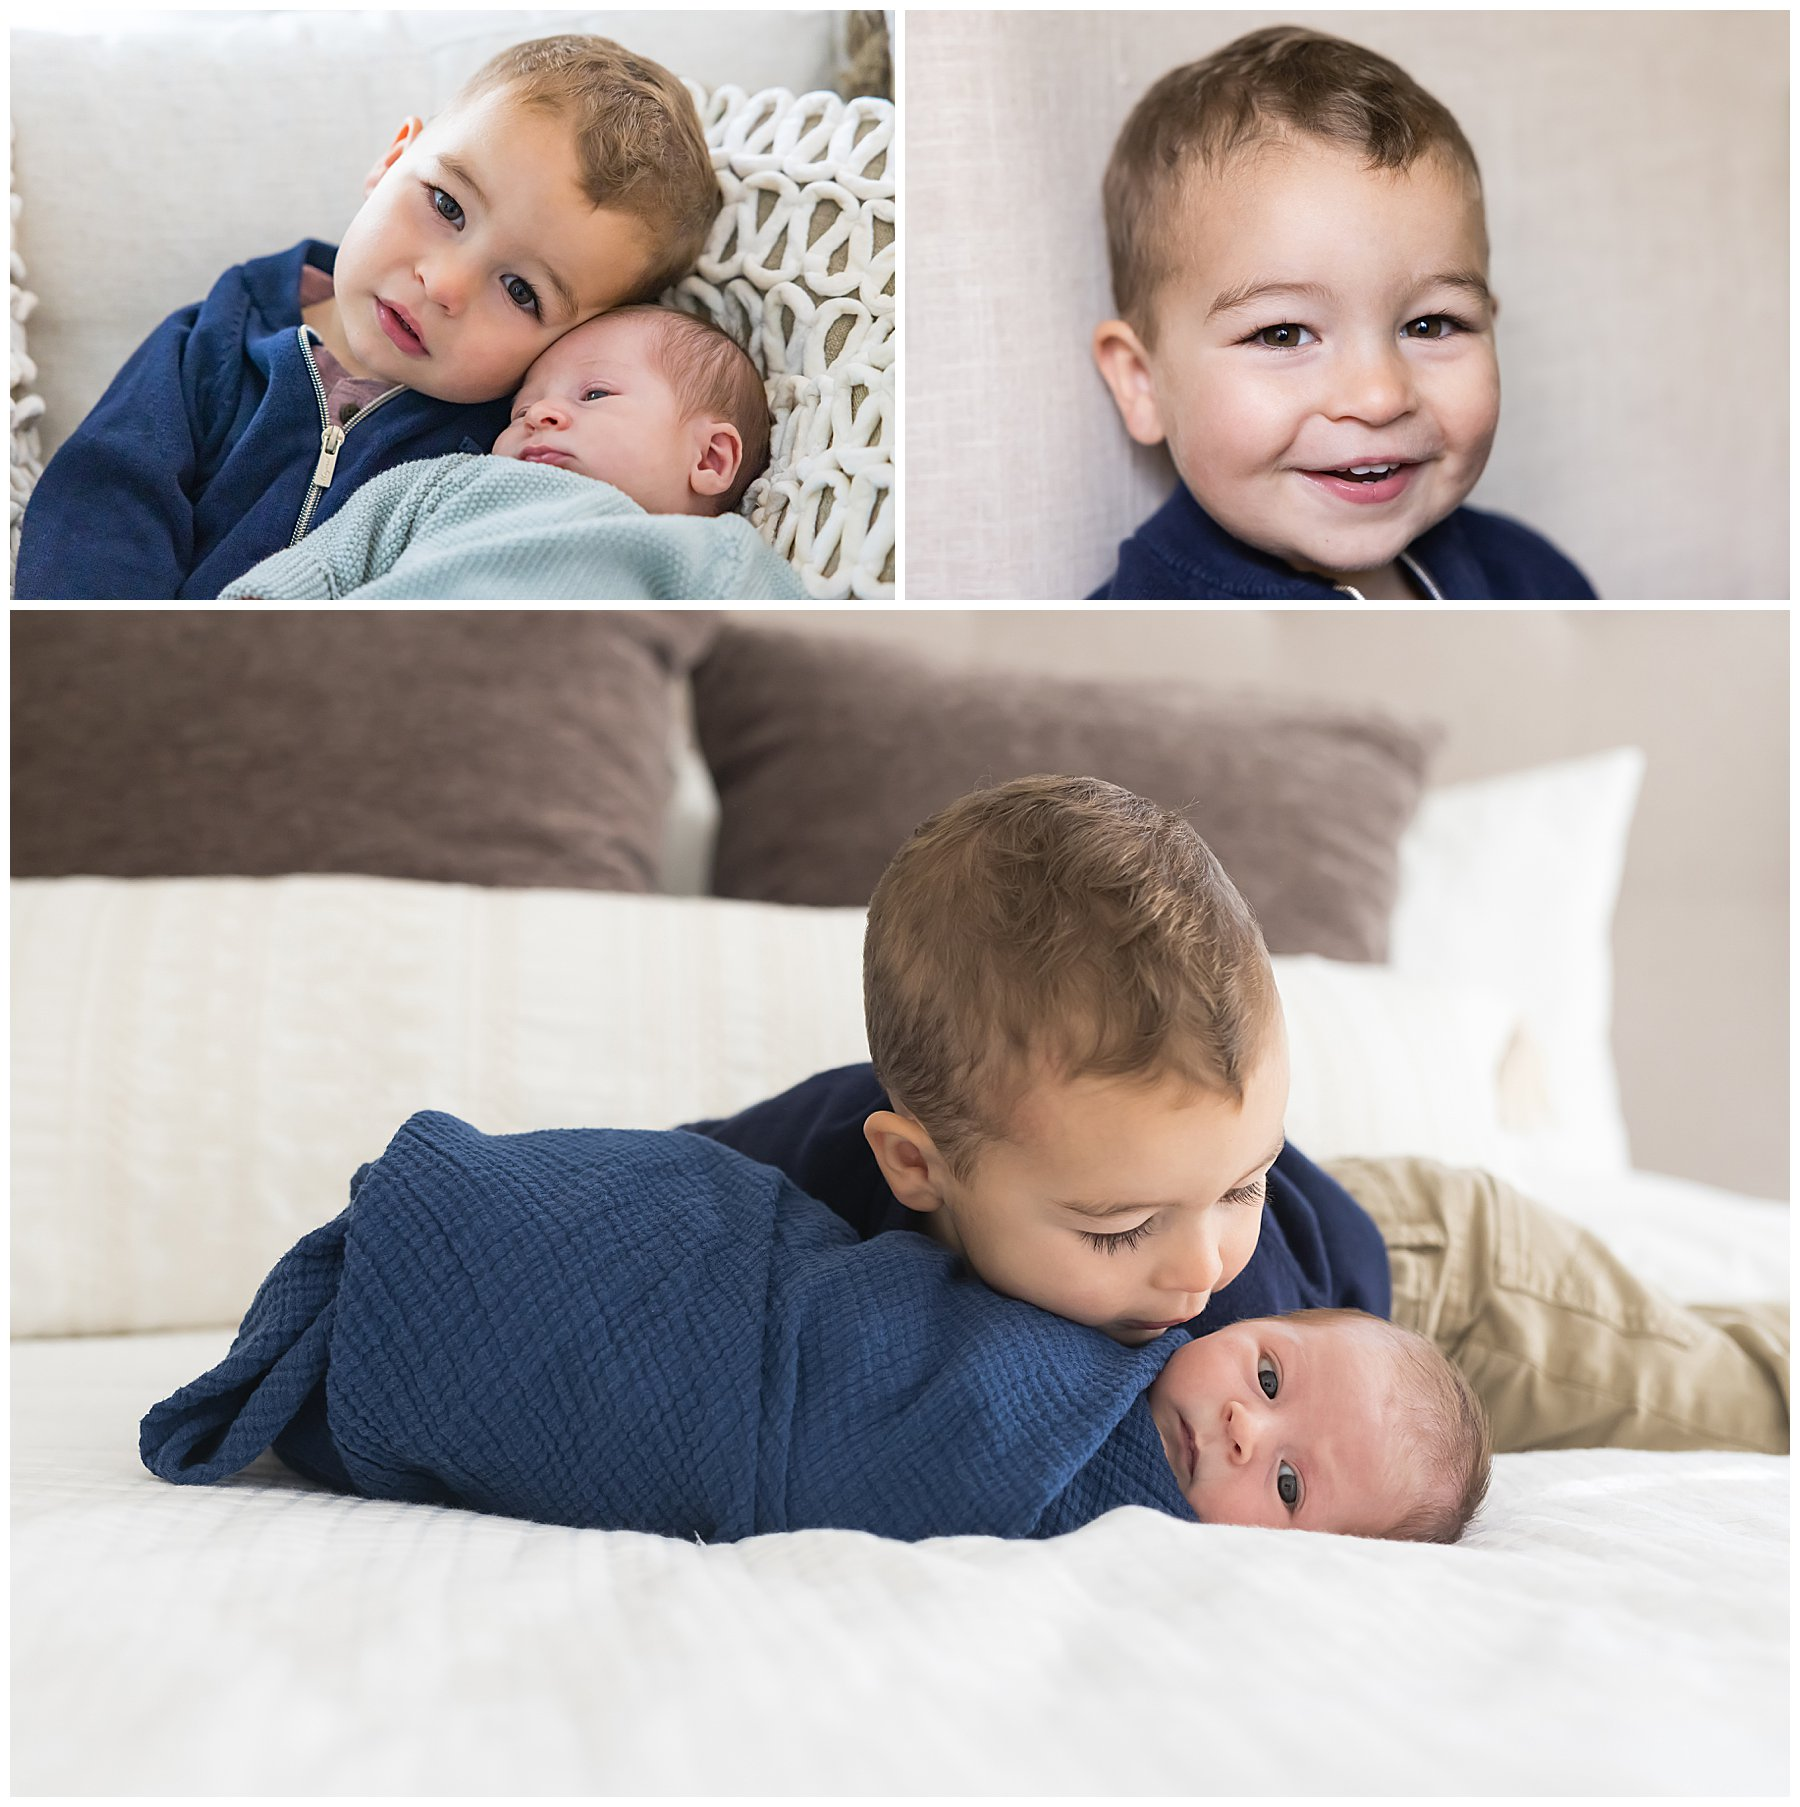 newborn baby boy with big brother on bed